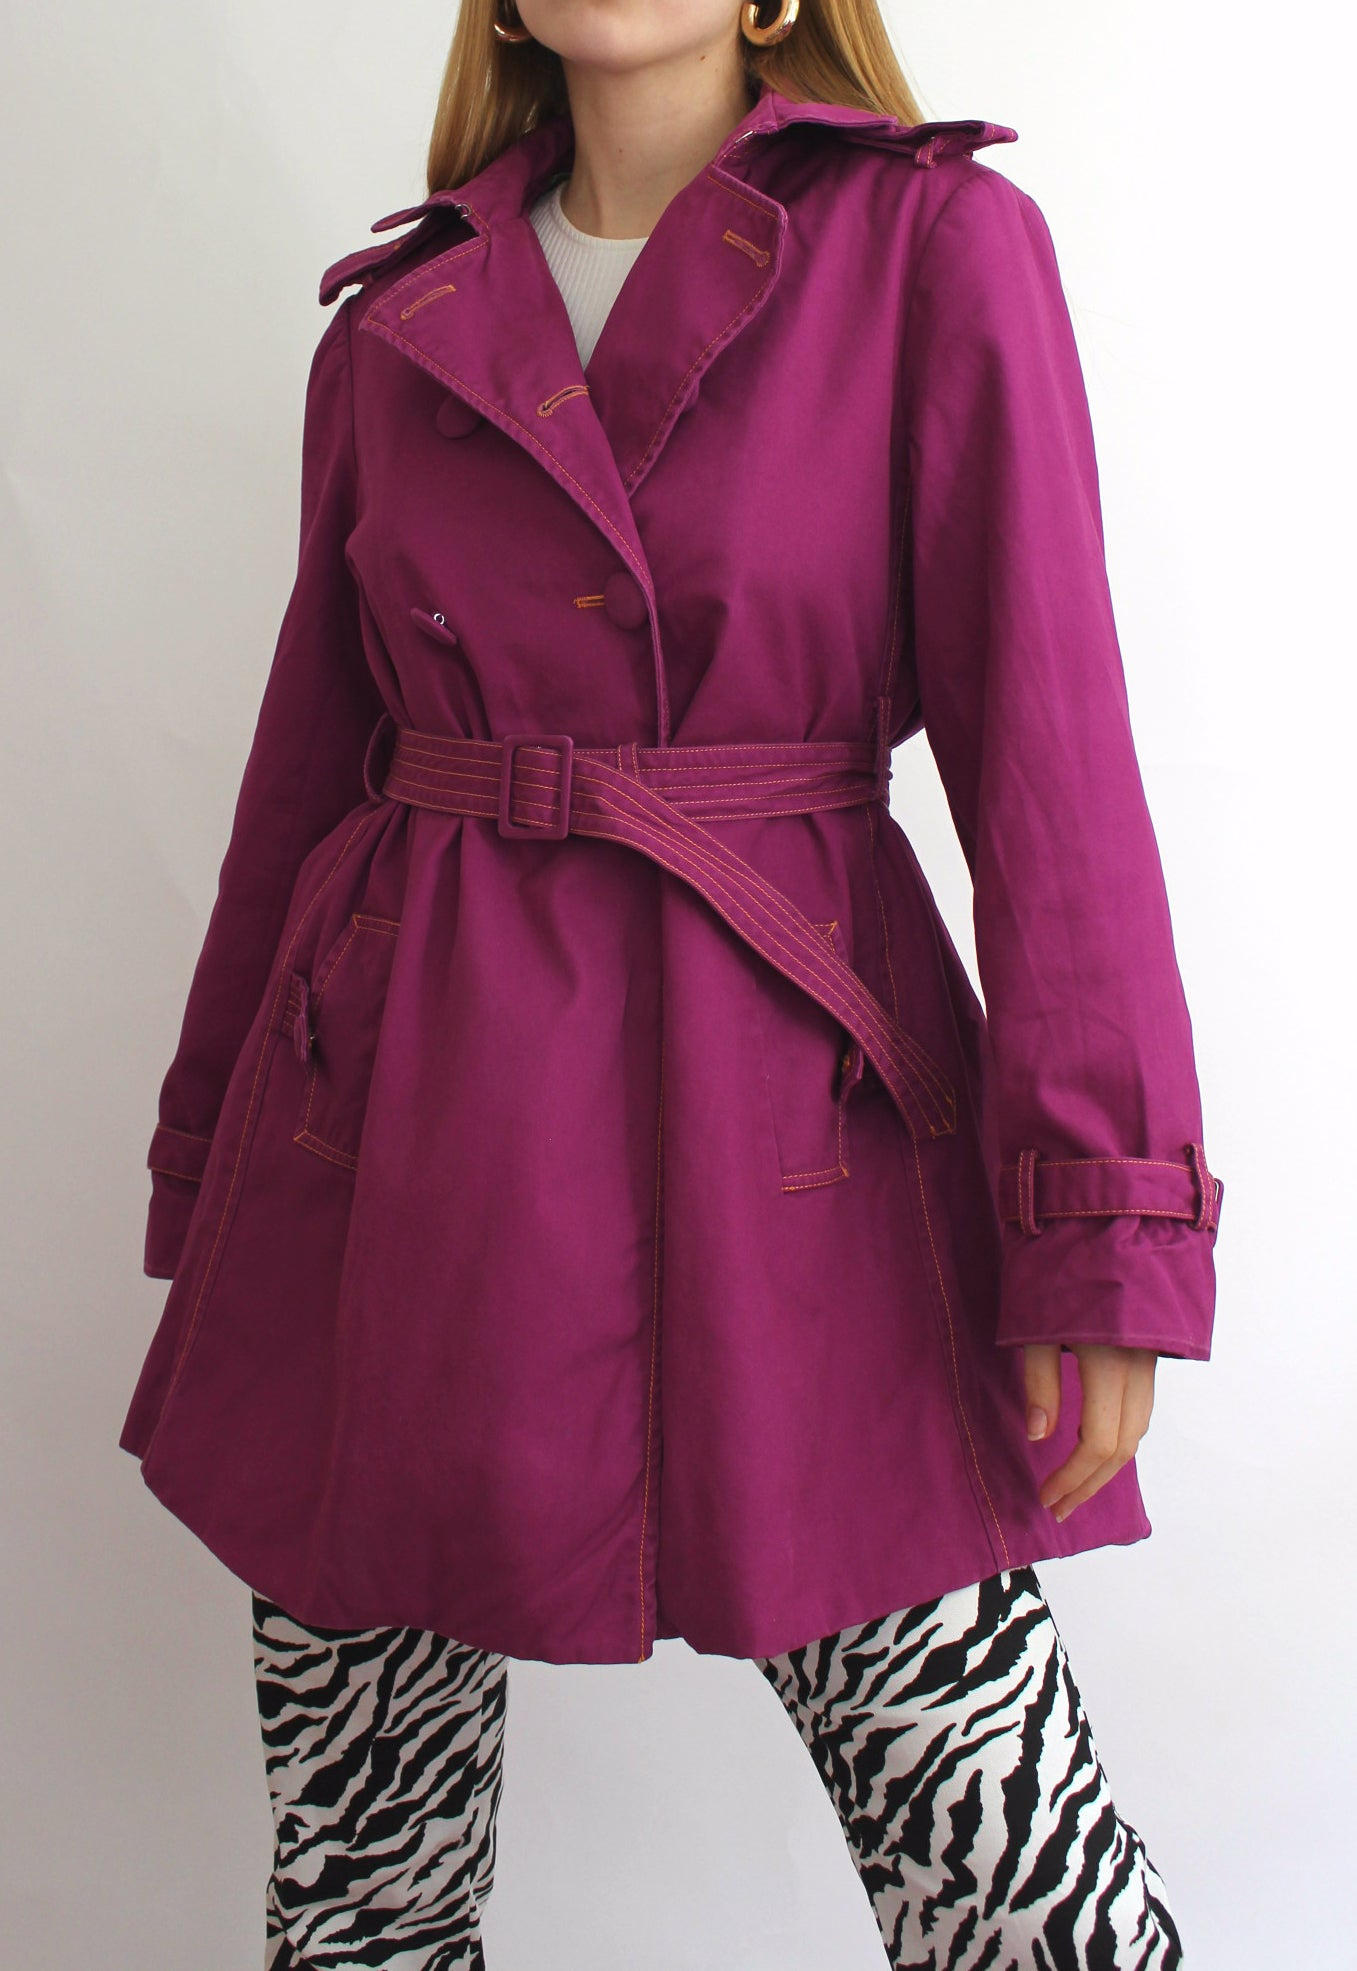 Ness Purple Trench Coat With Orange Contrast Stitching